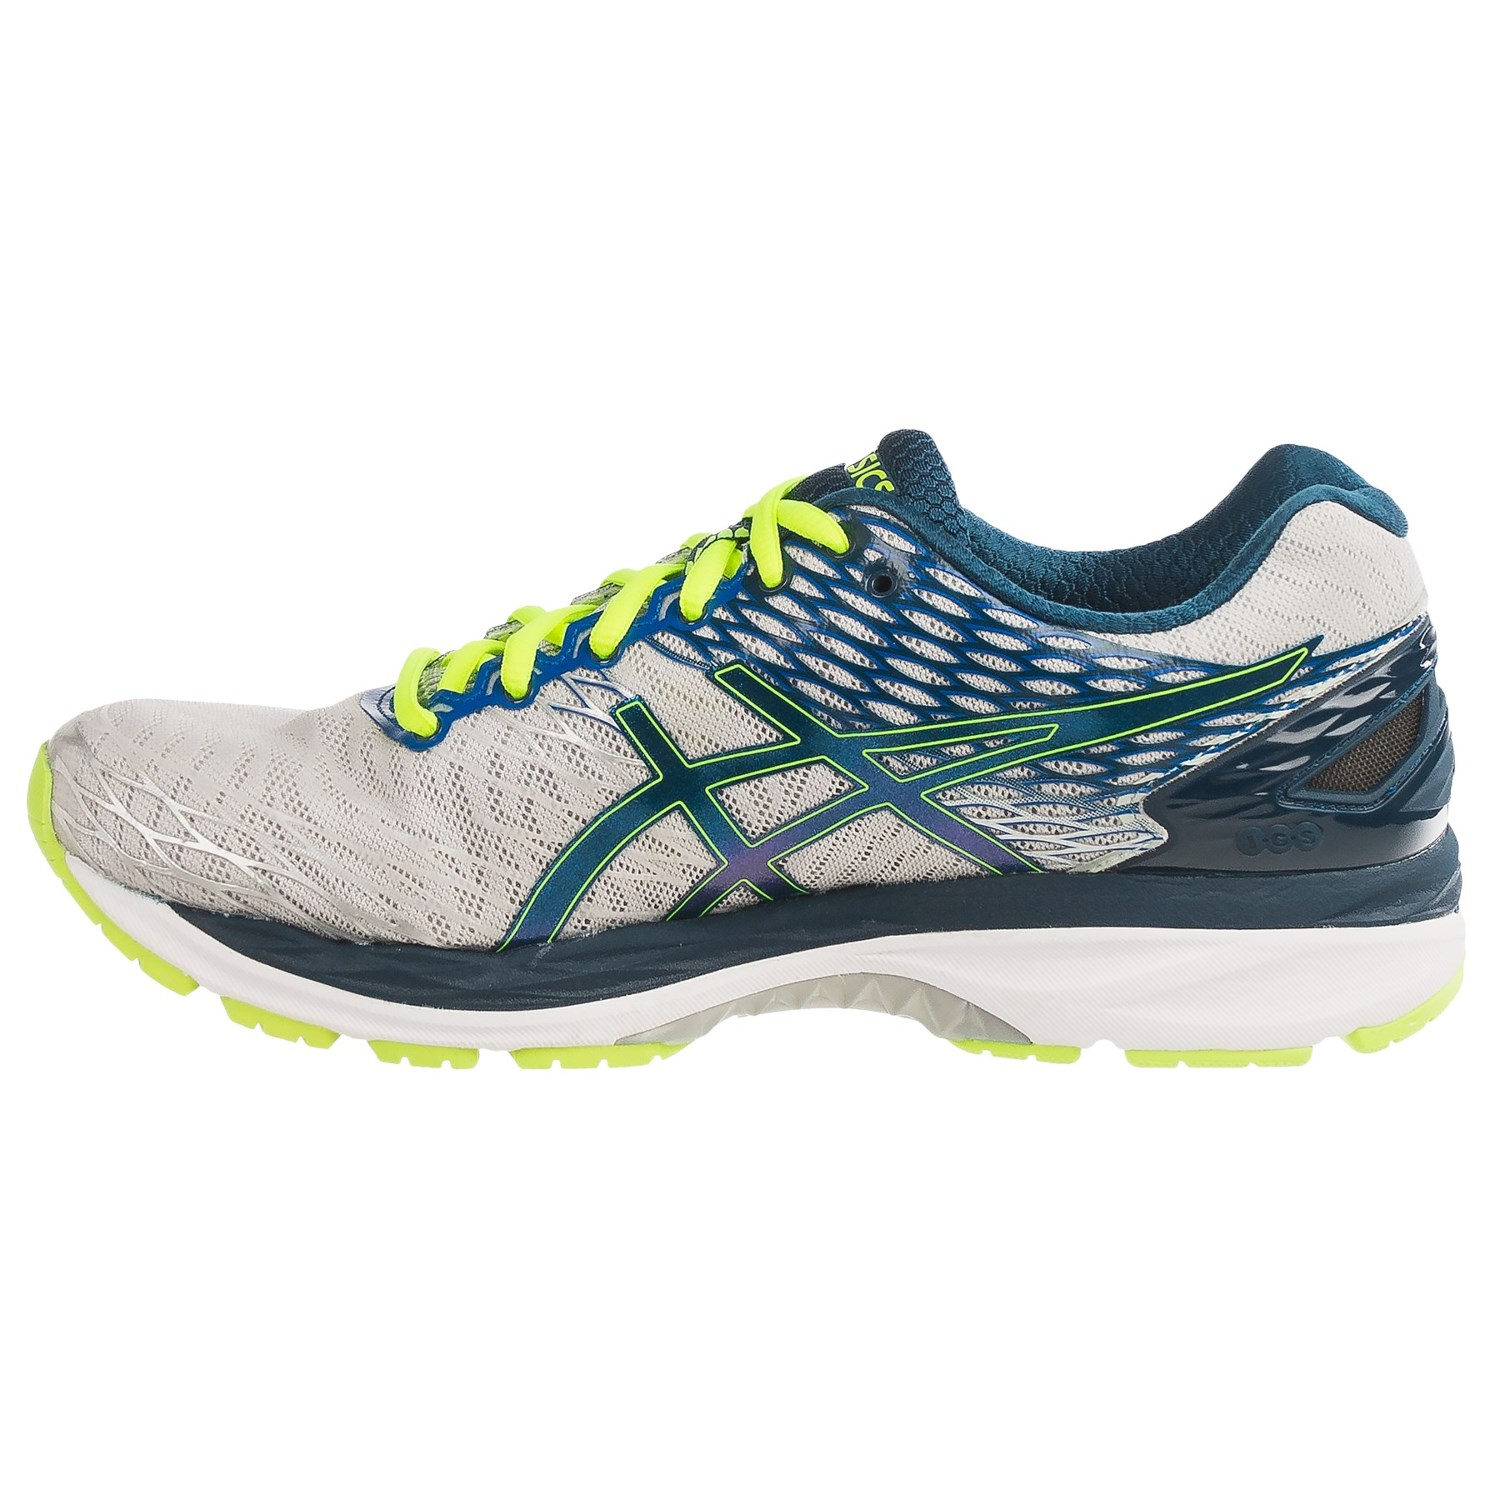 asics gel nimbus 18 running shoes for men save 40. Black Bedroom Furniture Sets. Home Design Ideas